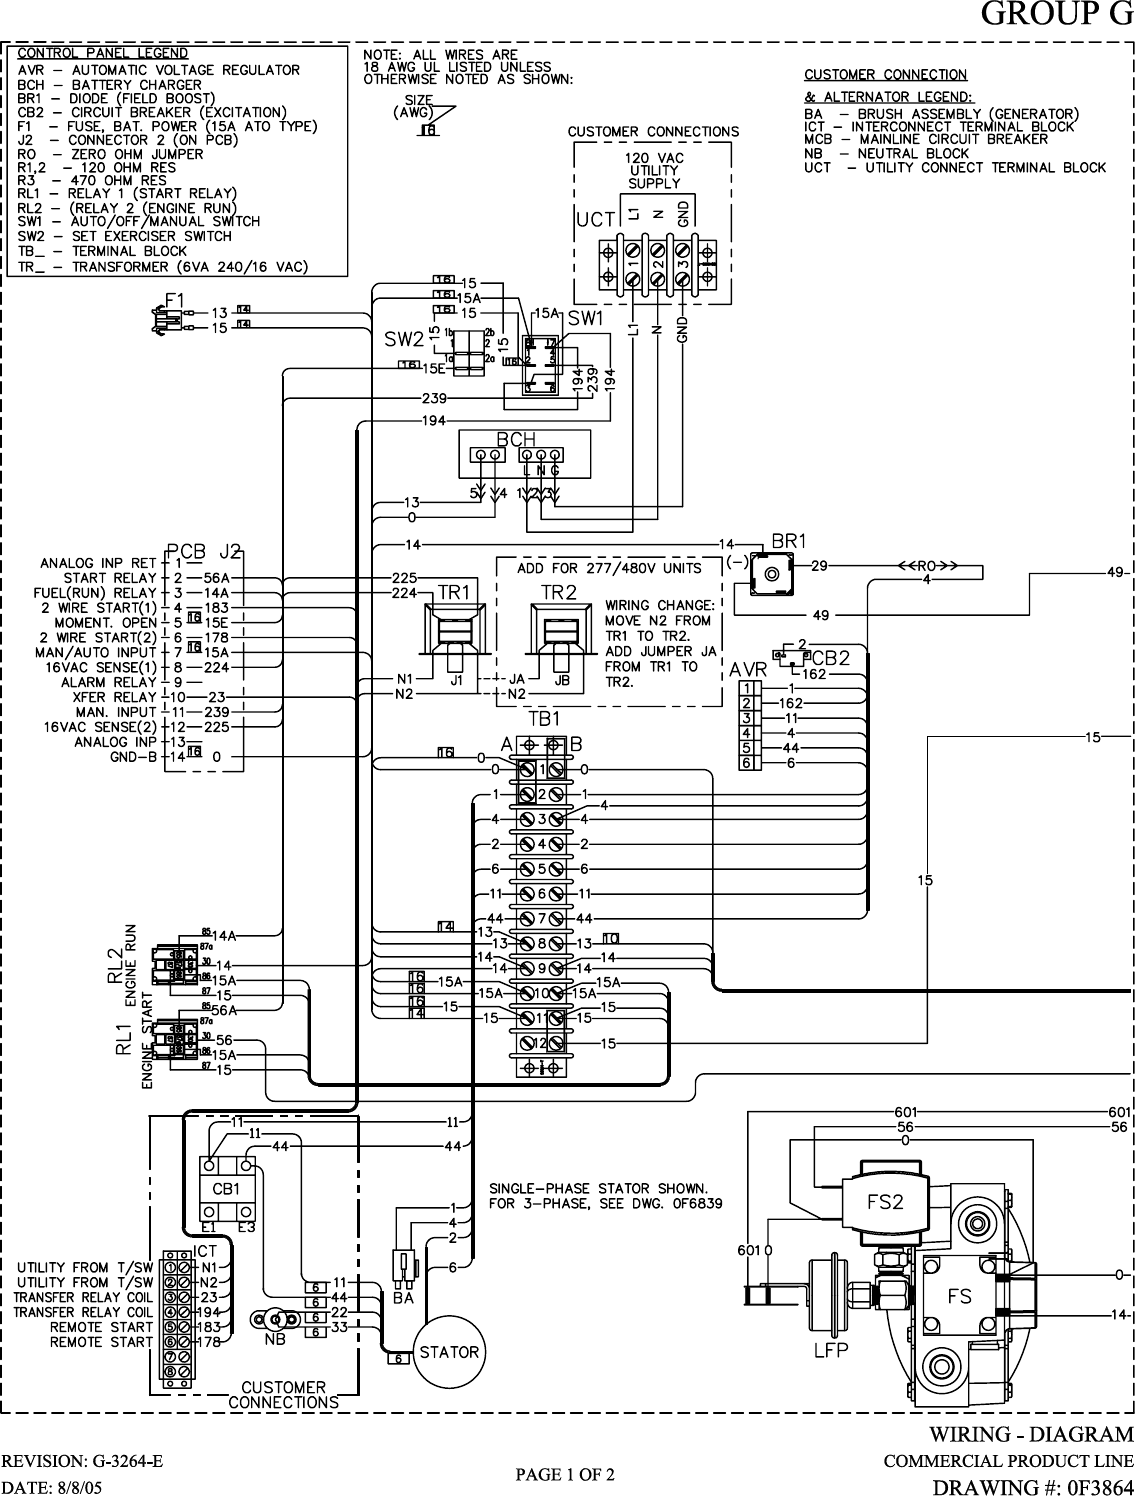 Generac Generator Wiring Schematics 277 480 Regulator Diagrams 120 208v Power Systems 005221 0 Users Manual Cover026 Rev0 9 05 On Diagram